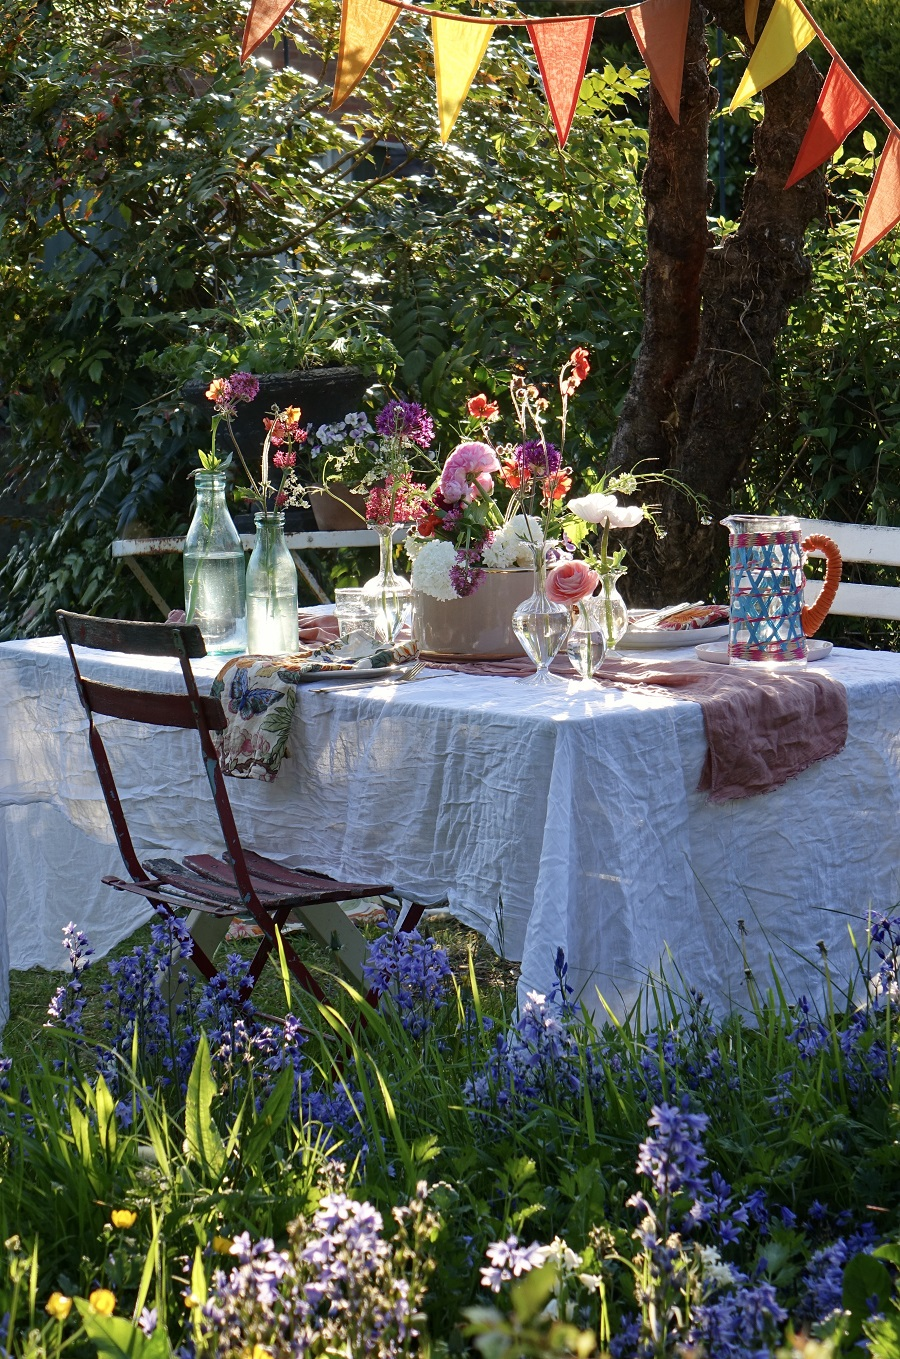 Styling Some Chelsea Magic in Your Very Own Garden